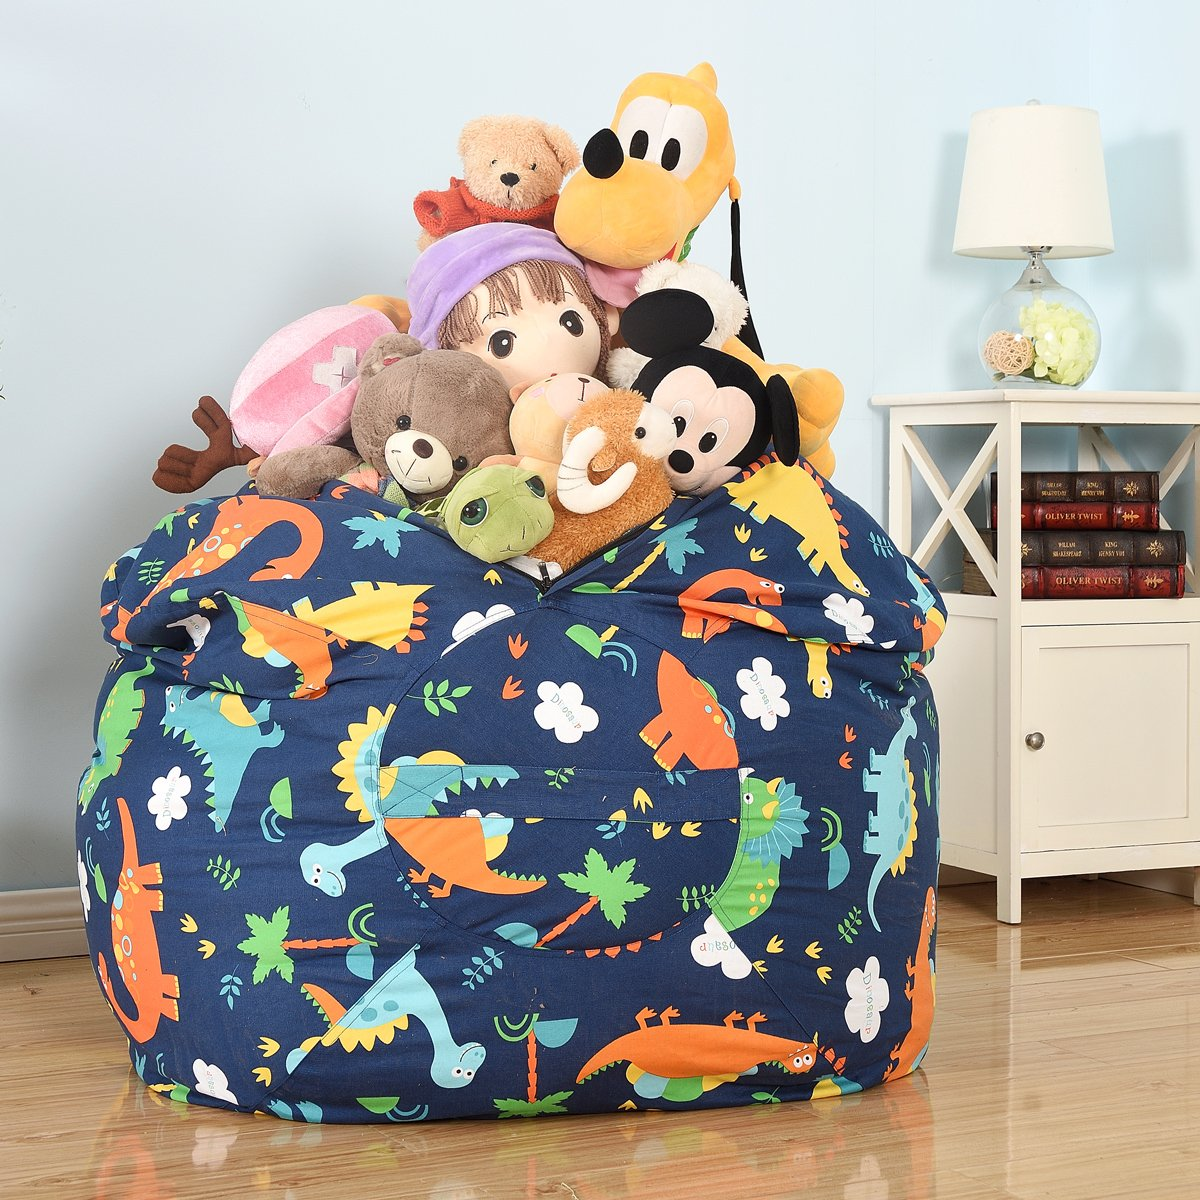 extra large stuffed animals bean bag chair cover 100 cotton canvas kids toy 712217842426 ebay. Black Bedroom Furniture Sets. Home Design Ideas